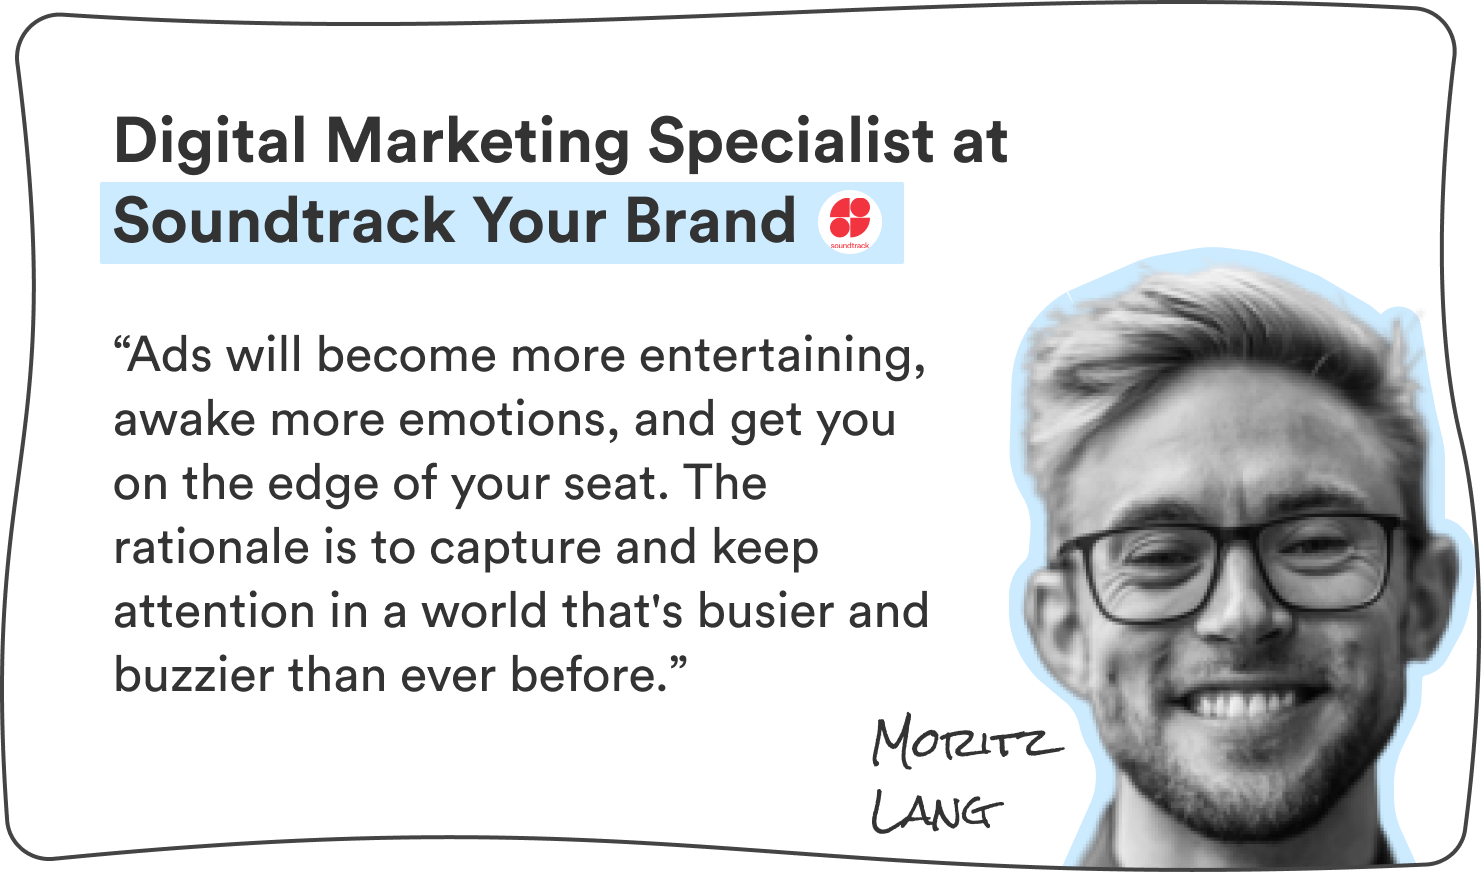 """Moritz Lang, Digital Marketing Specialist at Soundtrack Your Brand: """"Ads will become more entertaining, awake more emotions, and get you on the edge of your seat. The rationale is to capture and keep attention in a world that's busier and buzzier than ever before."""""""